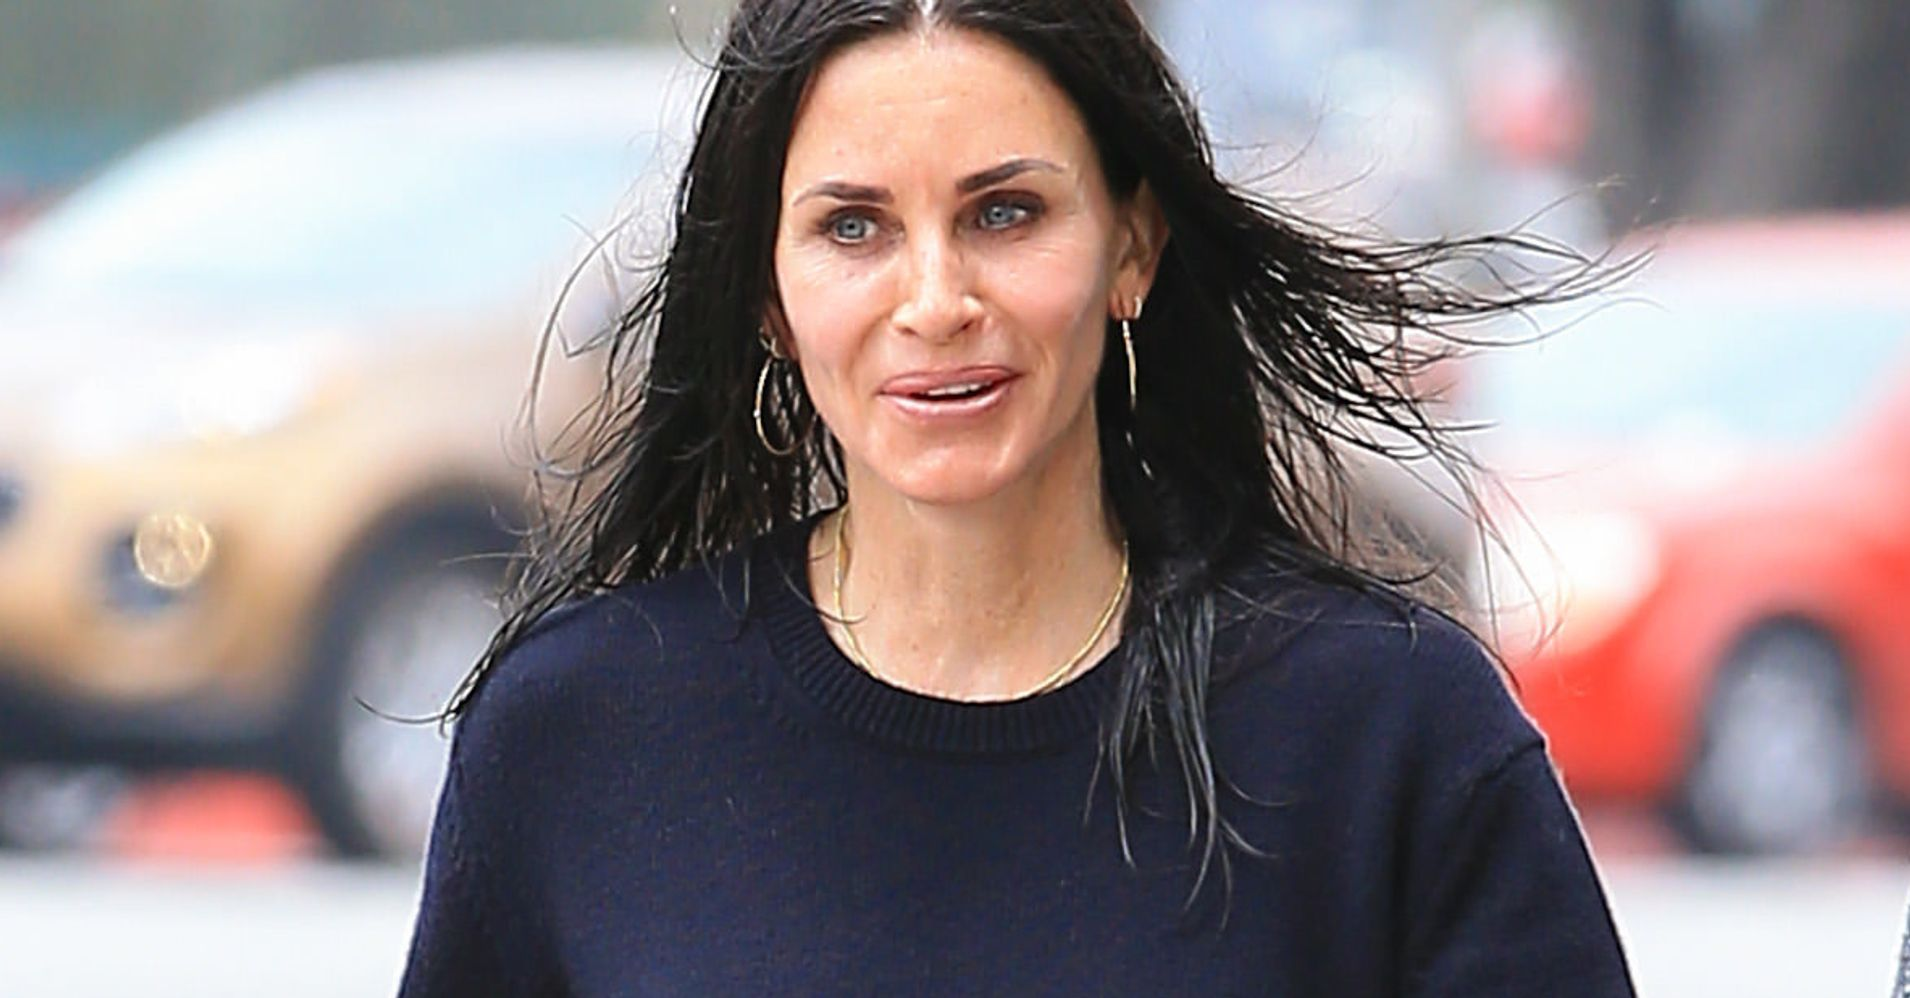 Courteney Cox Stopped Getting Fillers Says She Wants To